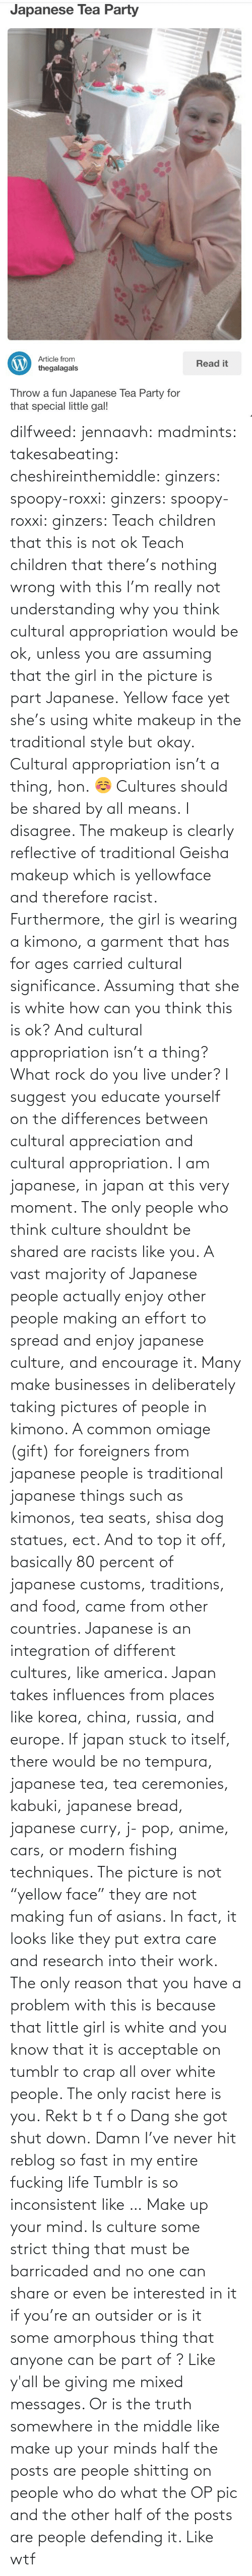 "White People: Japanese Tea Party  Article from  thegalagals  Read it  Throw a fun Japanese lea Party for  that special little gal! dilfweed:  jennaavh:  madmints:  takesabeating:  cheshireinthemiddle:  ginzers:  spoopy-roxxi:  ginzers:  spoopy-roxxi:  ginzers:  Teach children that this is not ok  Teach children that there's nothing wrong with this  I'm really not understanding why you think cultural appropriation would be ok, unless you are assuming that the girl in the picture is part Japanese.  Yellow face yet she's using white makeup in the traditional style but okay. Cultural appropriation isn't a thing, hon. ☺️ Cultures should be shared by all means.  I disagree. The makeup is clearly reflective of traditional Geisha makeup which is yellowface and therefore racist. Furthermore, the girl is wearing a kimono, a garment that has for ages carried cultural significance. Assuming that she is white how can you think this is ok? And cultural appropriation isn't a thing? What rock do you live under? I suggest you educate yourself on the differences between cultural appreciation and cultural appropriation.  I am japanese, in japan at this very moment. The only people who think culture shouldnt be shared are racists like you.  A vast majority of Japanese people actually enjoy other people making an effort to spread and enjoy japanese culture, and encourage it. Many make businesses in deliberately taking pictures of people in kimono. A common omiage (gift) for foreigners from japanese people is traditional japanese things such as kimonos, tea seats, shisa dog statues, ect.  And to top it off, basically 80 percent of japanese customs, traditions, and food, came from other countries. Japanese is an integration of different cultures, like america. Japan takes influences from places like korea, china, russia, and europe. If japan stuck to itself, there would be no tempura, japanese tea, tea ceremonies, kabuki, japanese bread, japanese curry, j- pop, anime, cars, or modern fishing techniques. The picture is not ""yellow face"" they are not making fun of asians. In fact, it looks like they put extra care and research into their work.  The only reason that you have a problem with this is because that little girl is white and you know that it is acceptable on tumblr to crap all over white people. The only racist here is you.  Rekt  b t f o  Dang she got shut down.  Damn I've never hit reblog so fast in my entire fucking life   Tumblr is so inconsistent like … Make up your mind. Is culture some strict thing that must be barricaded and no one can share or even be interested in it if you're an outsider or is it some amorphous thing that anyone can be part of ? Like y'all be giving me mixed messages. Or is the truth somewhere in the middle like make up your minds half the posts are people shitting on people who do what the OP pic and the other half of the posts are people defending it. Like wtf"